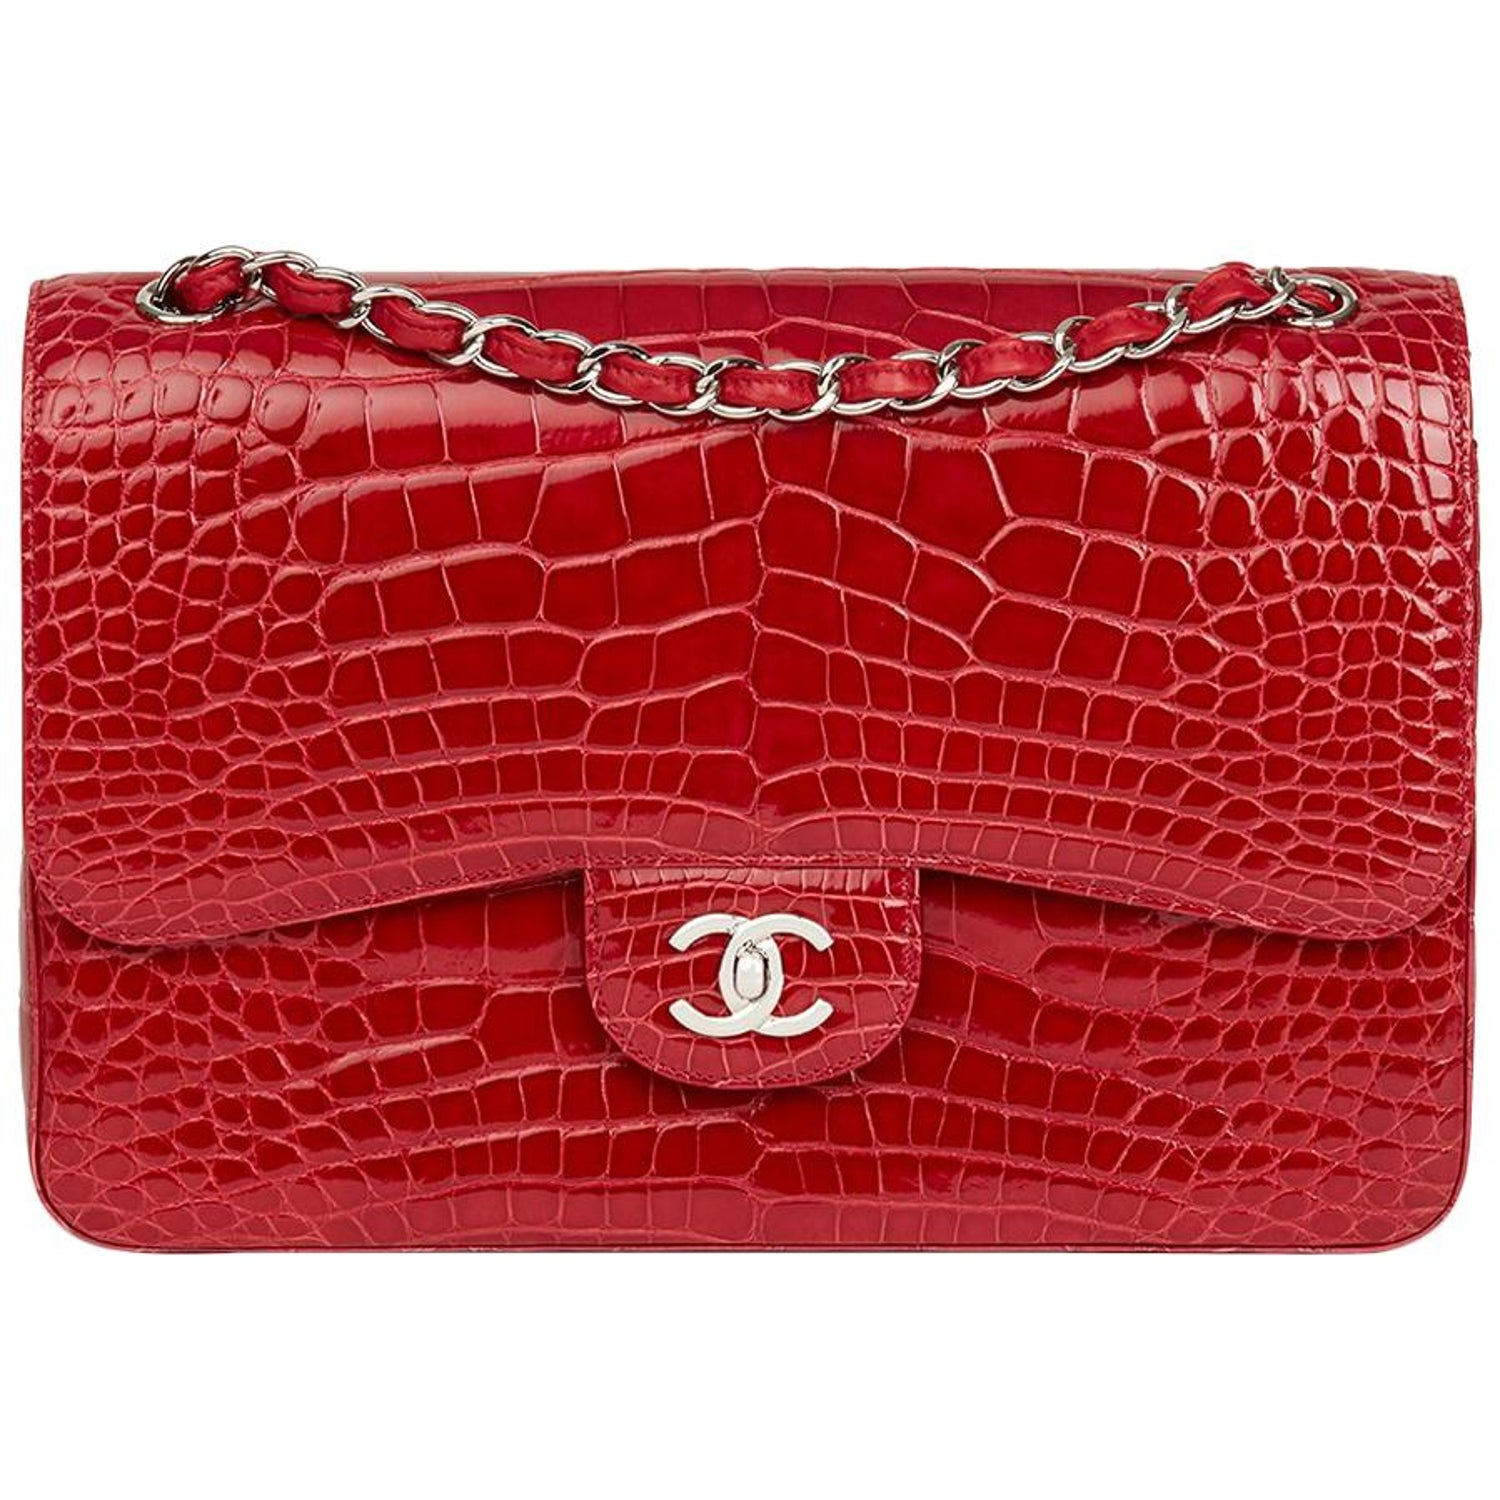 36b62cbd7b34 2013 Chanel Red Shiny Mississippiensis Alligator Jumbo Classic Double Flap  Bag at 1stdibs